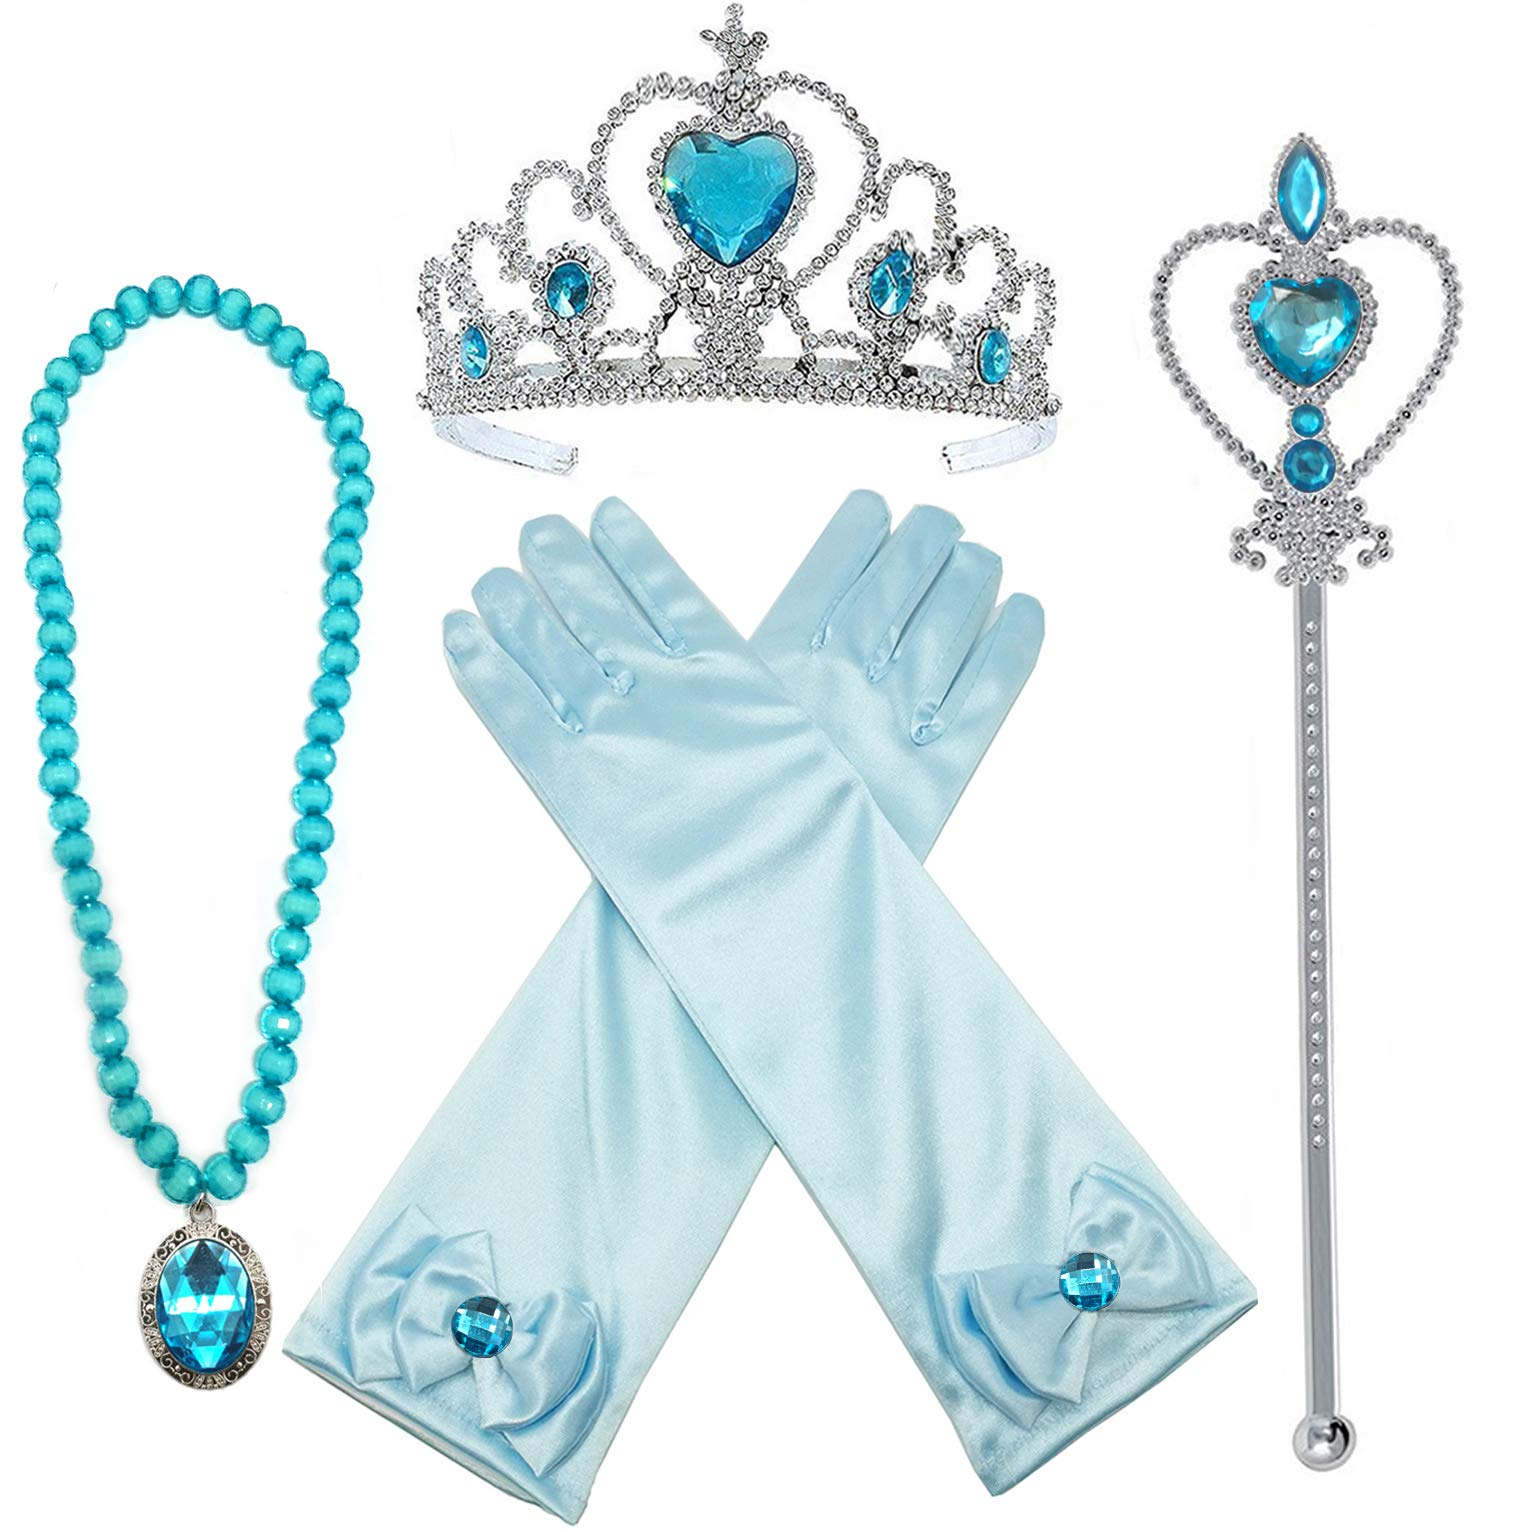 Alead Princess Elsa Dress Up Party Accessories et Gloves, Tiara, Wand and Necklace, Lake Blue, 4 Piece by Alead